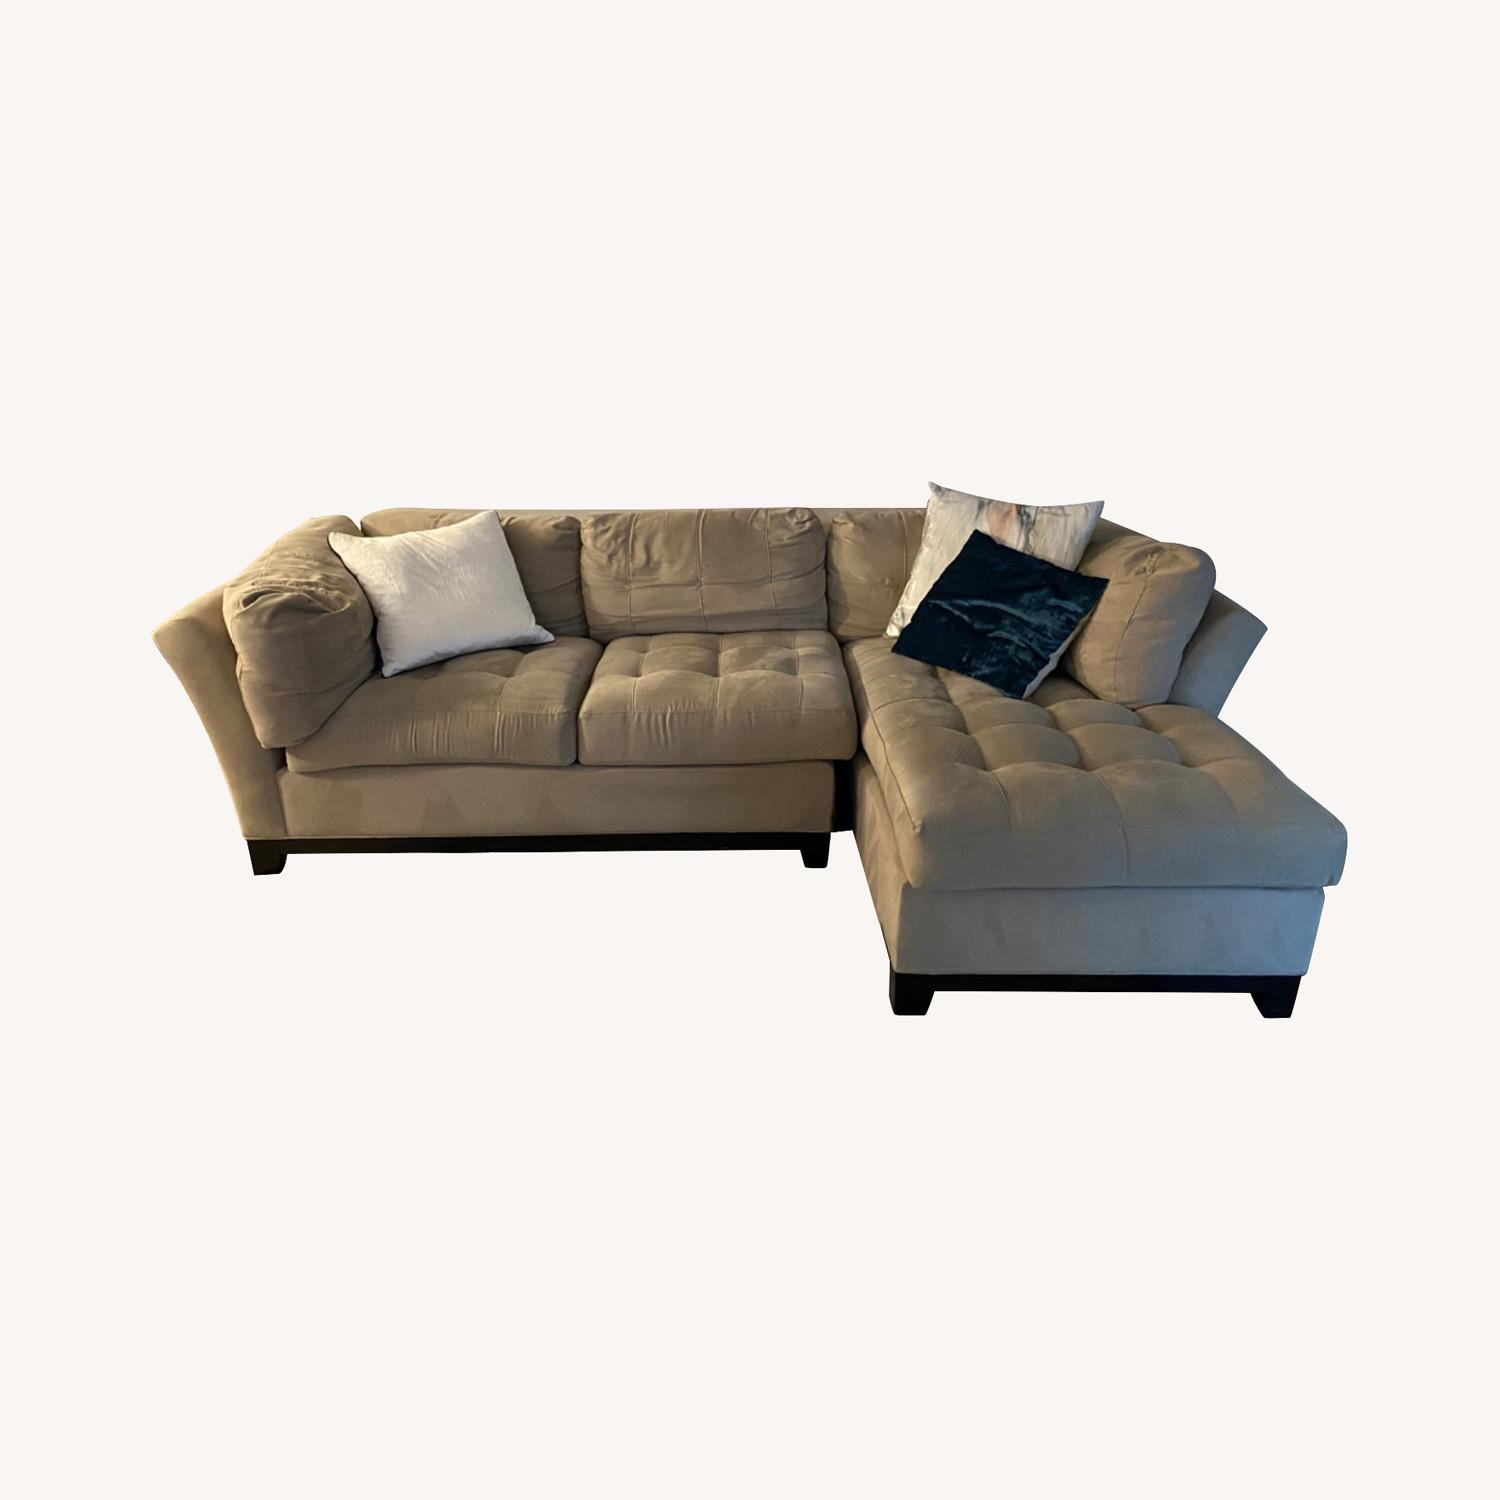 raymour flanigan 2 piece right hand sectional sofa